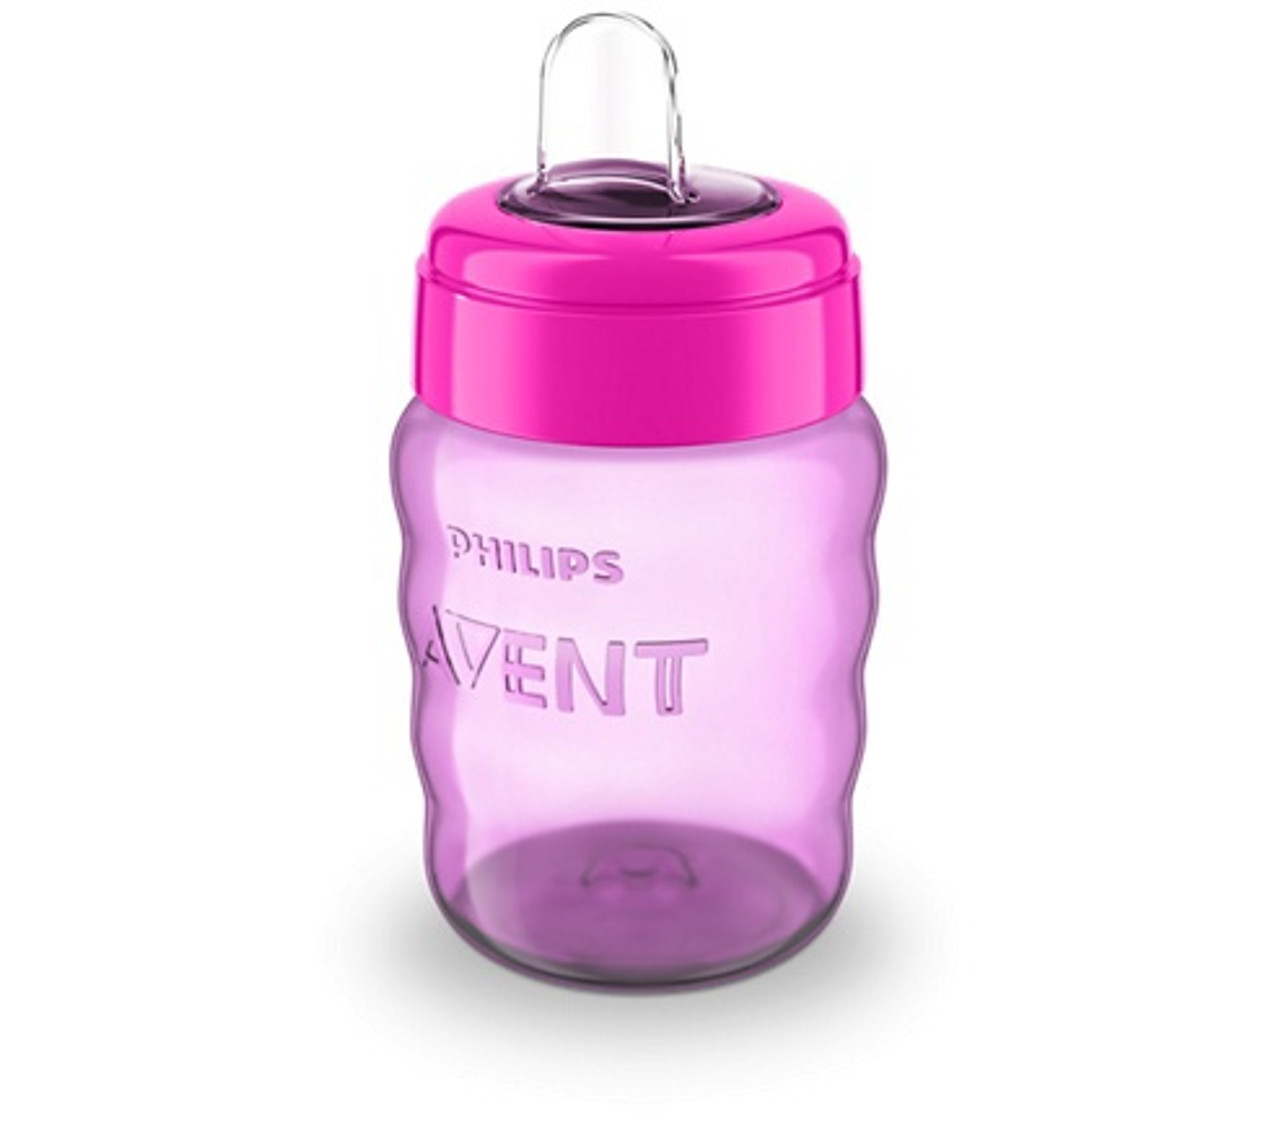 Avent My Easy Sip Cup 260ml PINK at Baby Barn Discounts Avent My easy sip soft spout cup comes in 260ml recommended for 9m+.